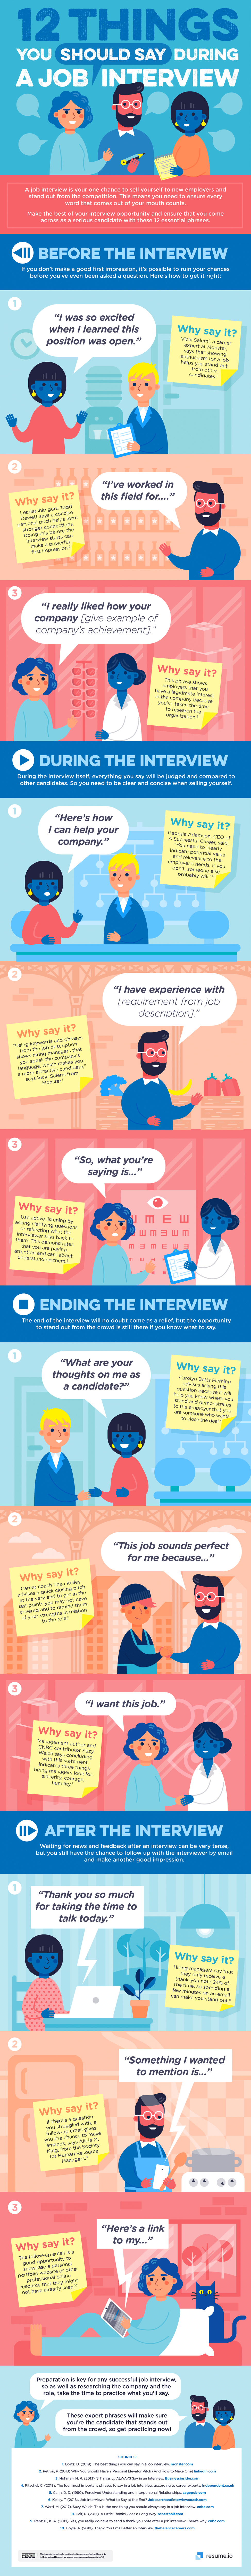 A colourful illustrated infographic featuring 12 things you should say during a job interview, according to Resume.io.